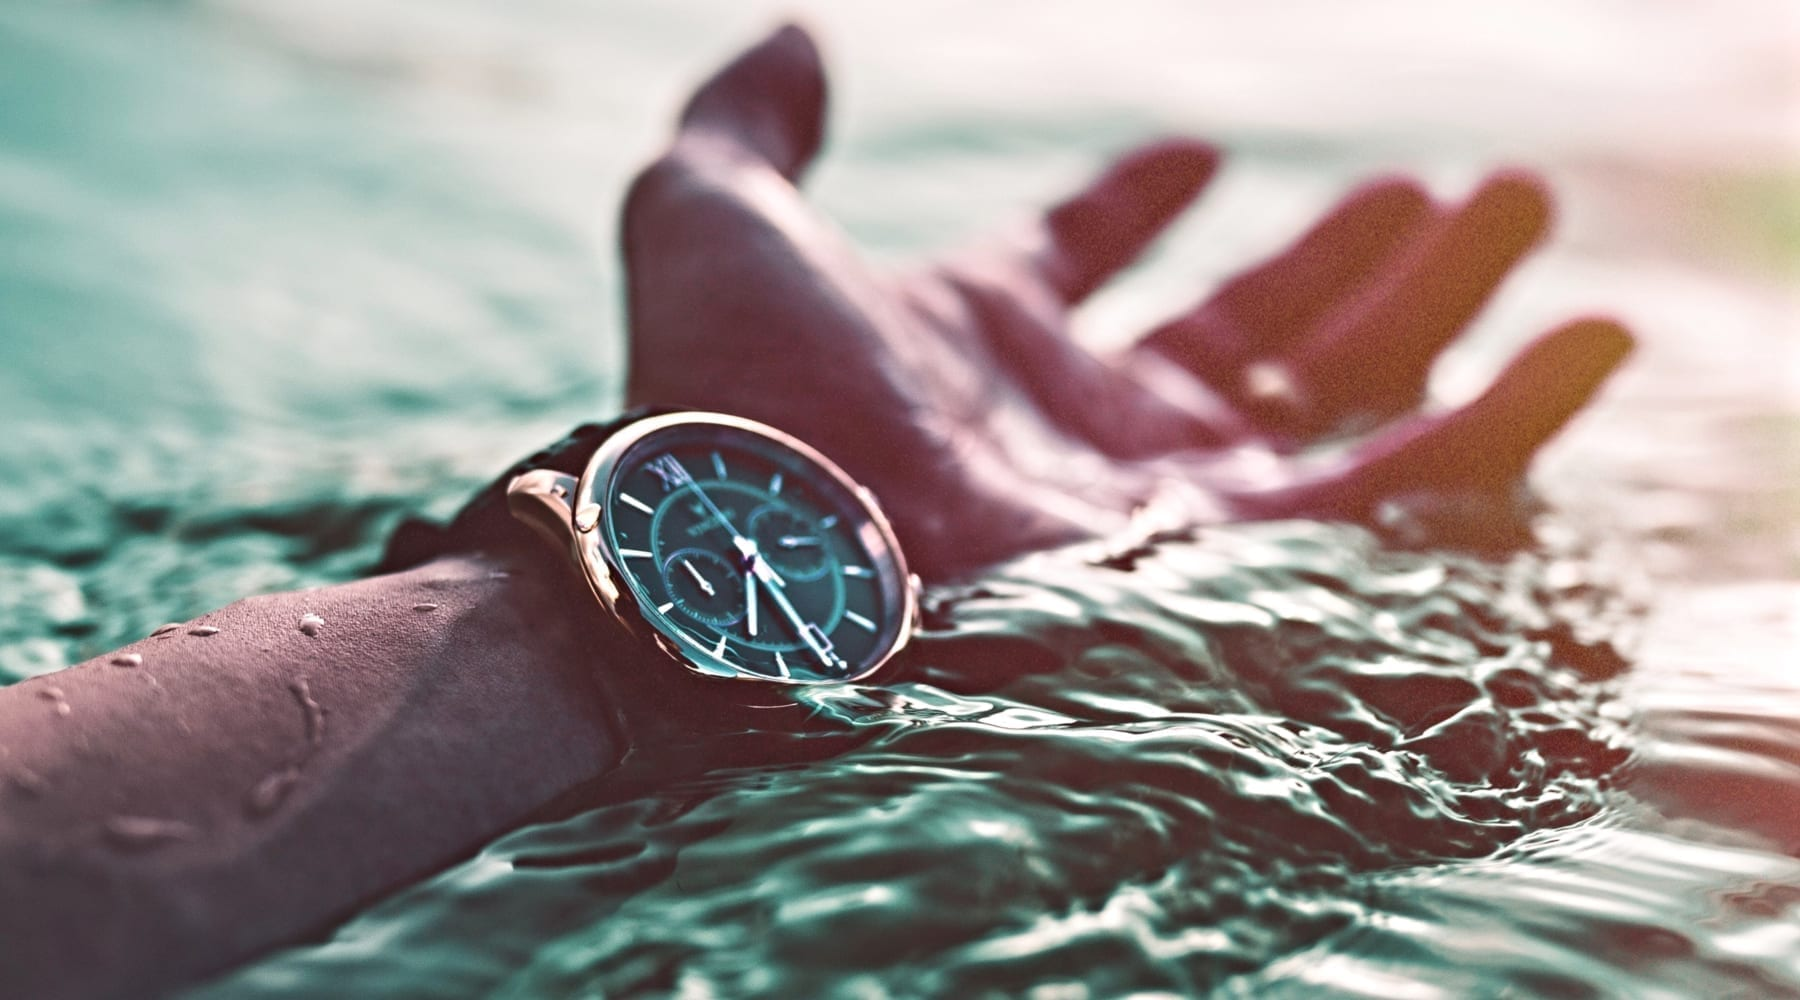 A wrist watch almost under the water